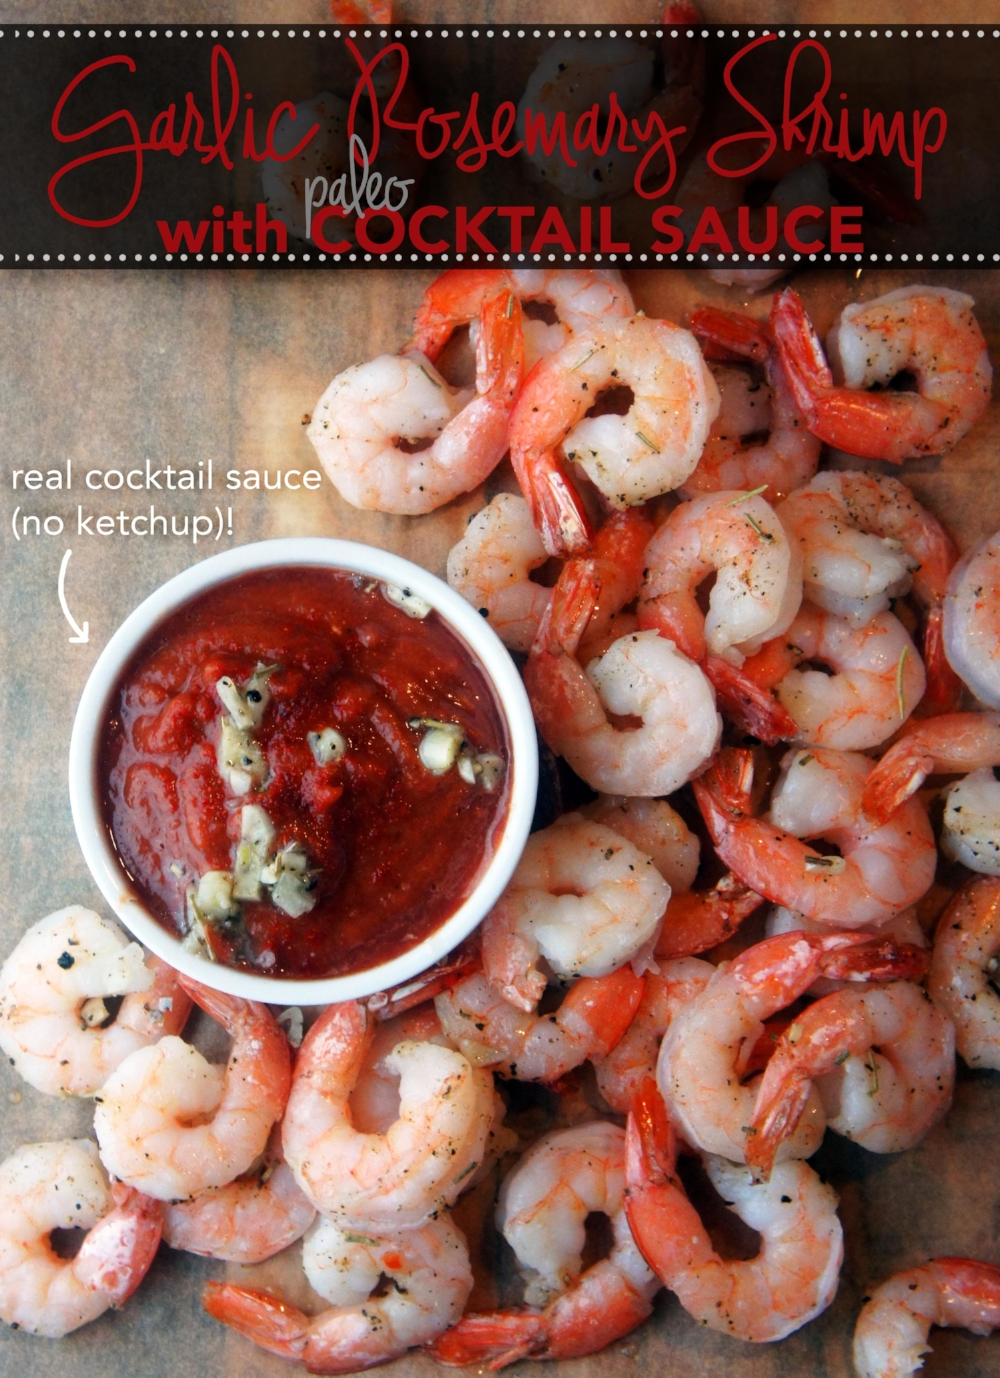 Garlic Rosemary Shrimp & Paleo Cocktail Sauce (made without ketchup!)